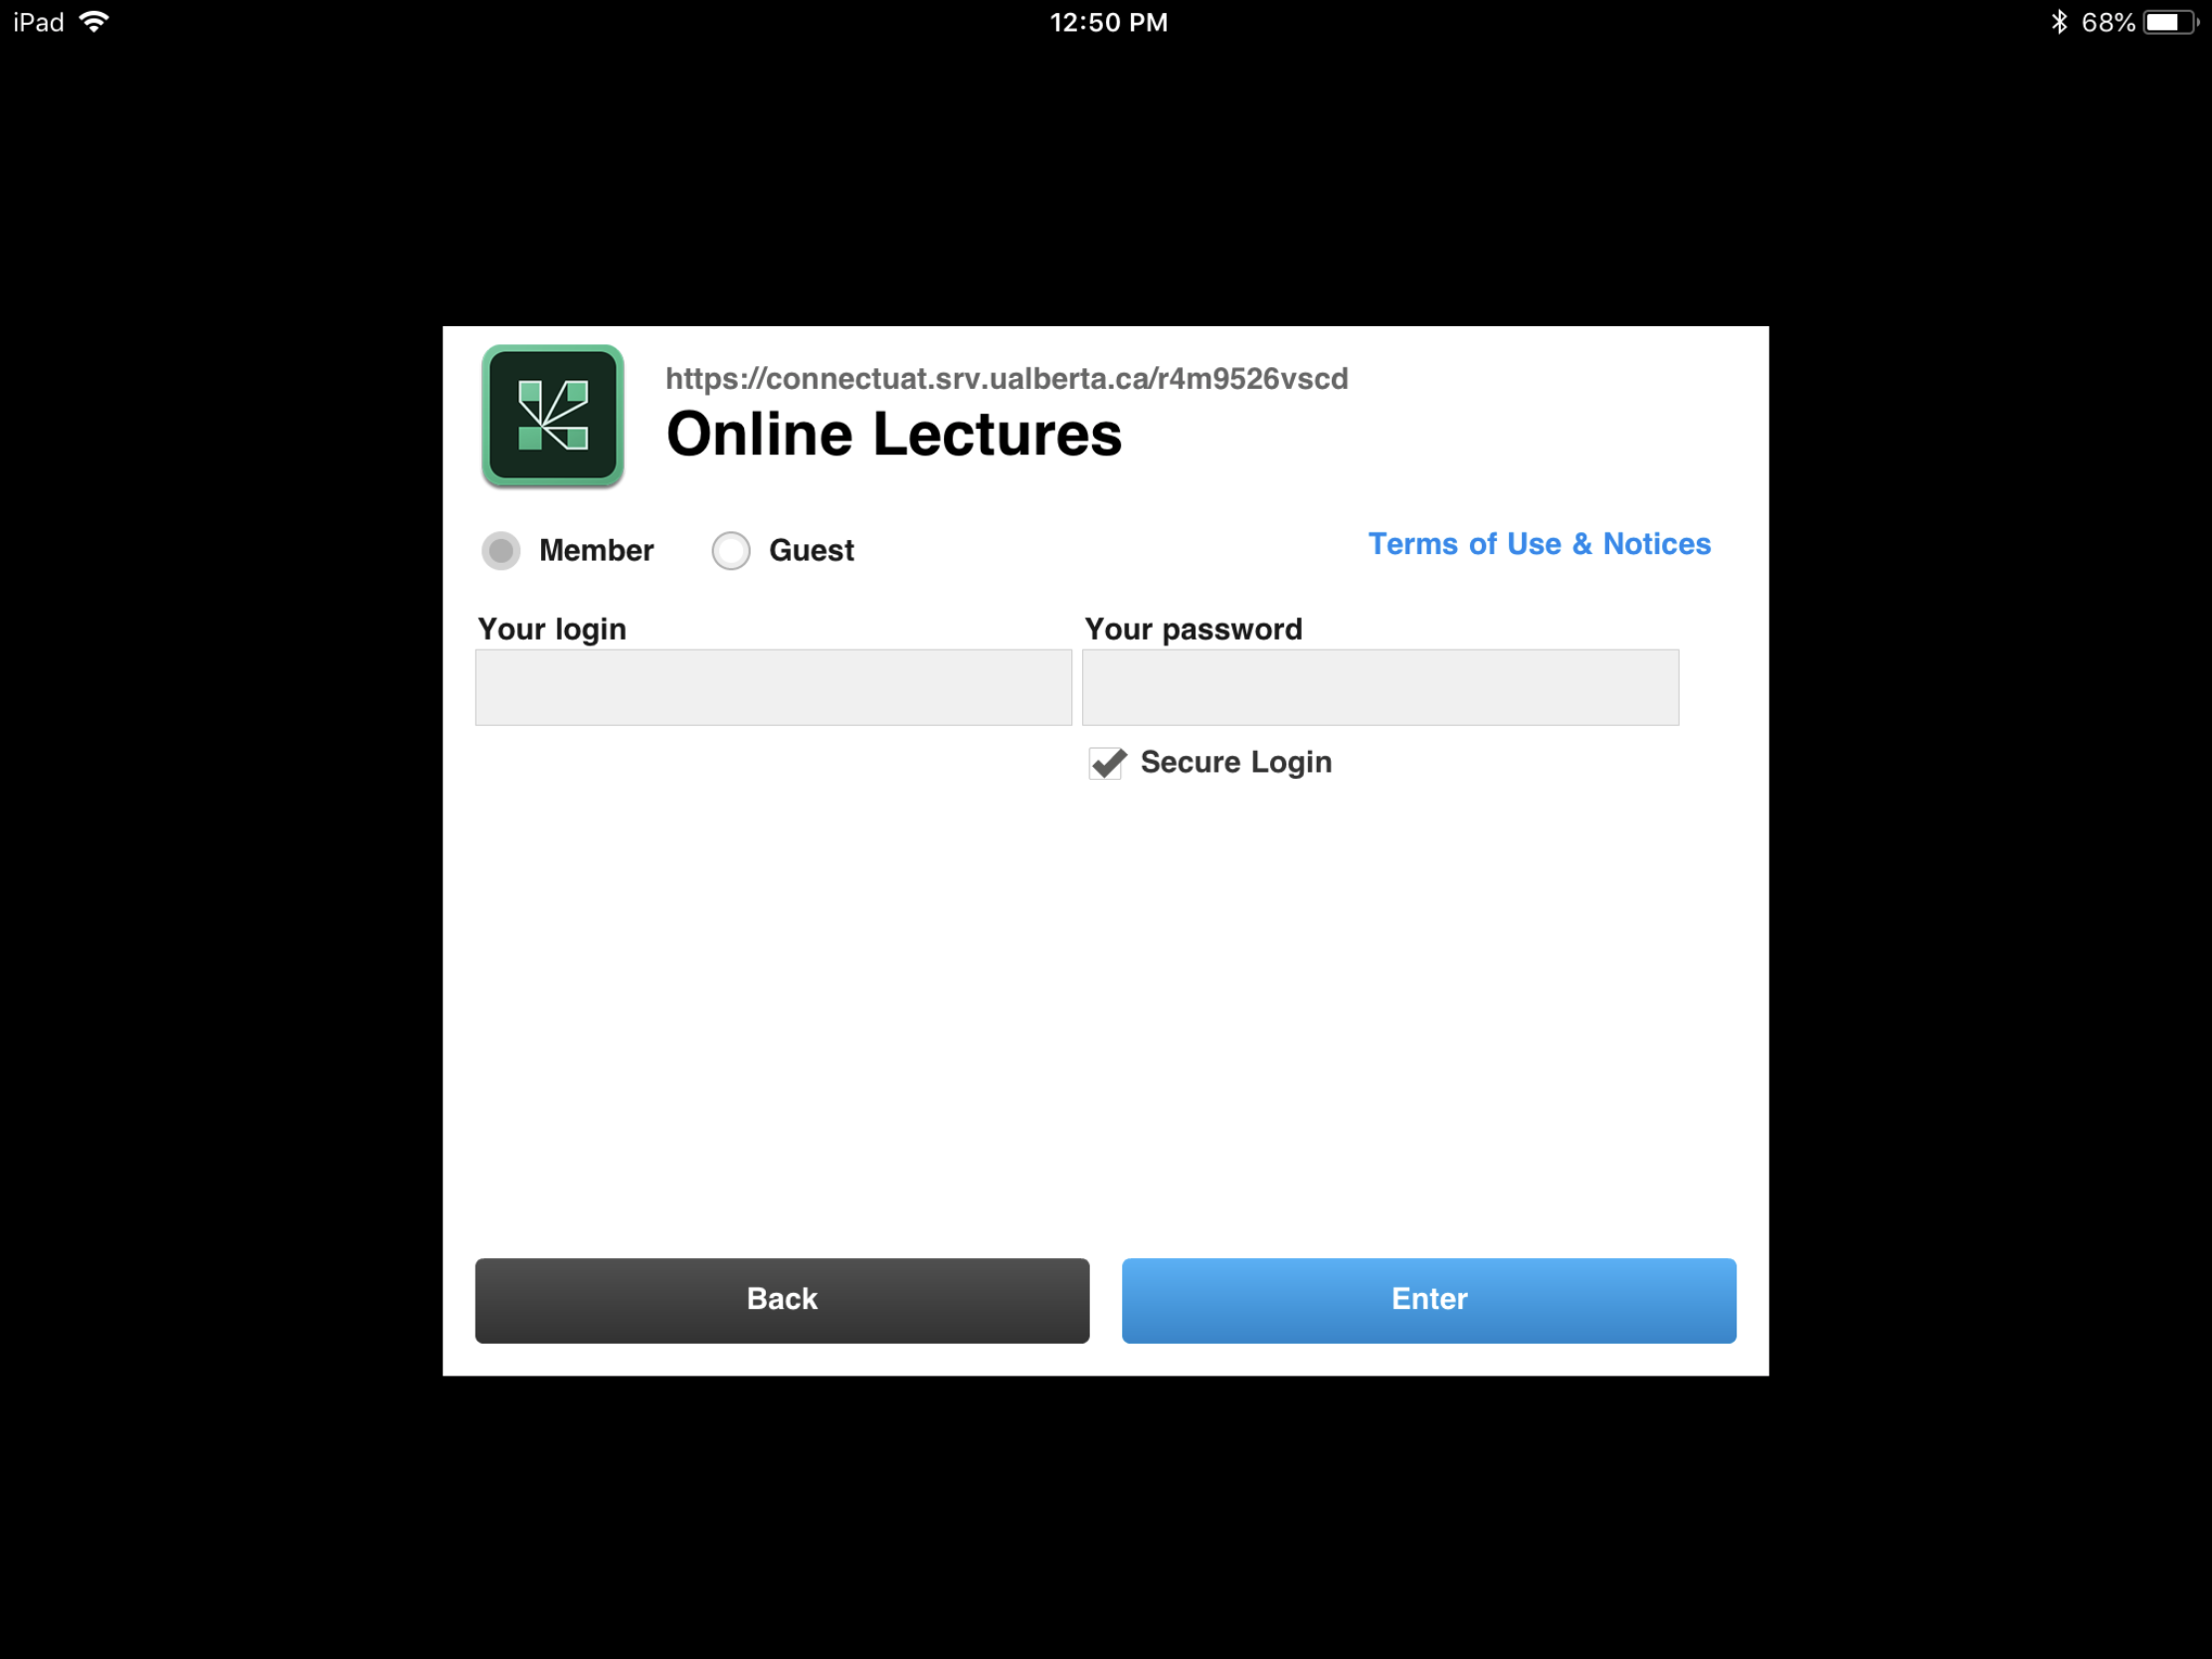 Superior Select Member And Use Your CCID And Password To Login. Secure Login Can Be  Left Checked. Accessing An EClassLive Meeting Directly Via EClass  (recommended) ... Photo Gallery